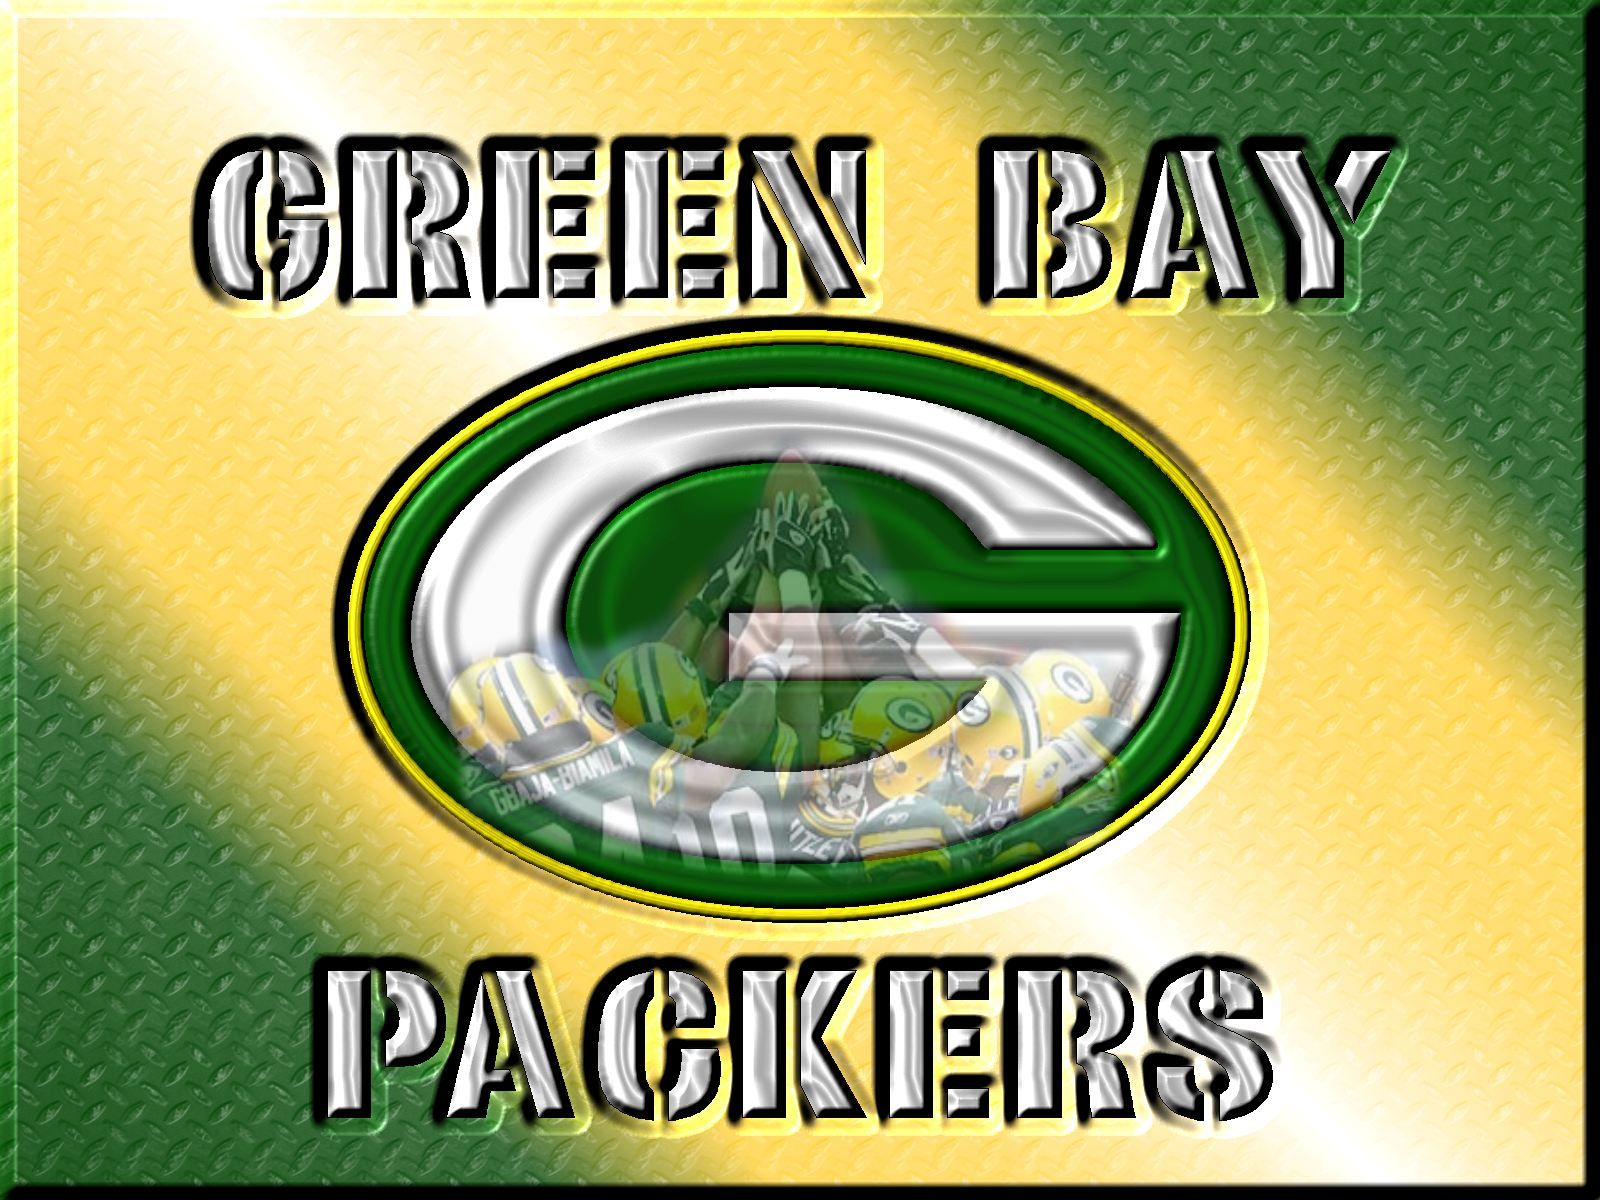 Green Bay Packers NFL Wall Border - InteriorDecorating | All ...